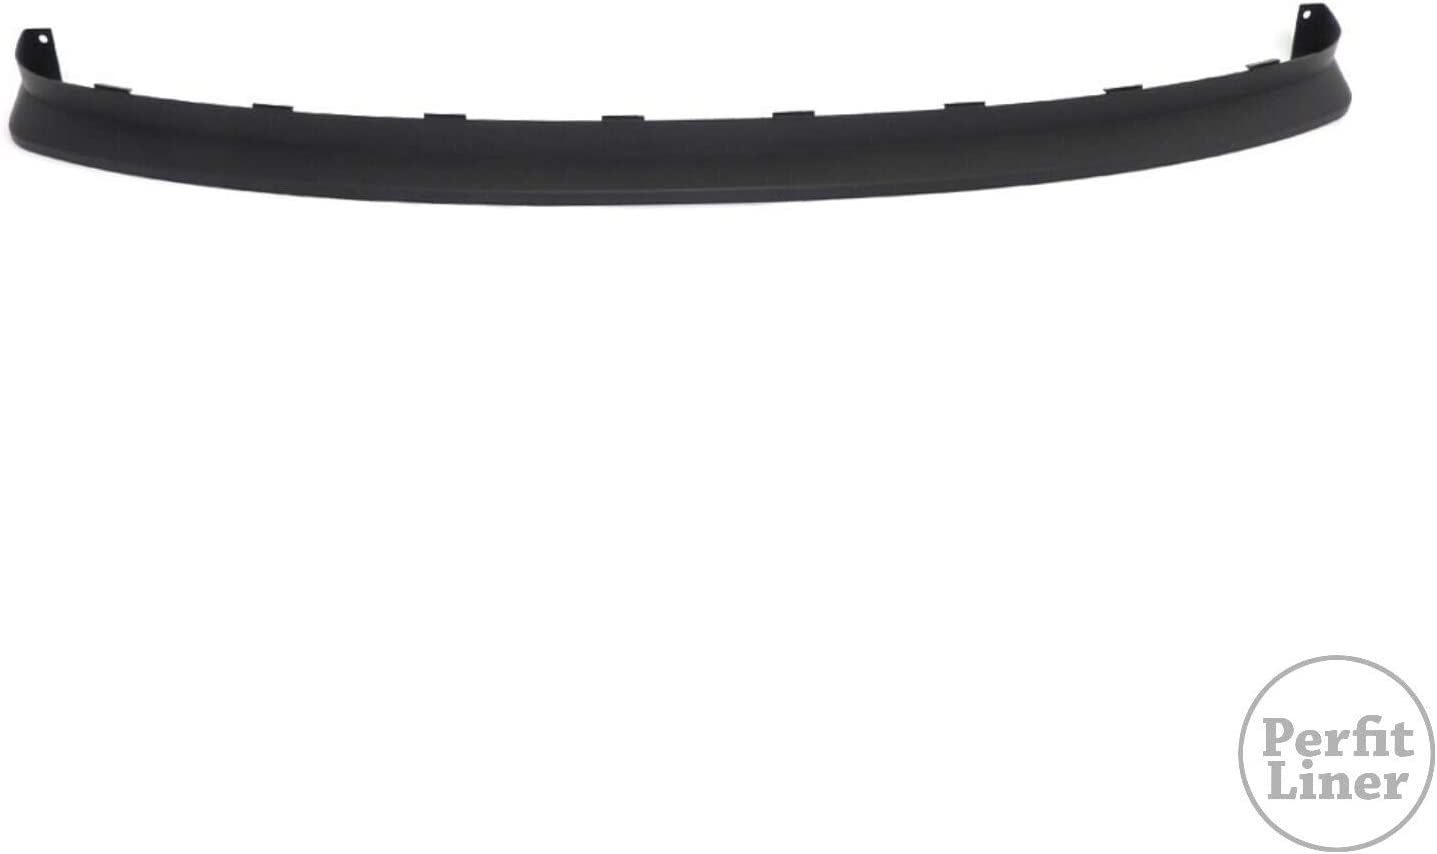 Perfit Gorgeous Liner New Replacement Parts Max 57% OFF Front Deflector Bumper Lower